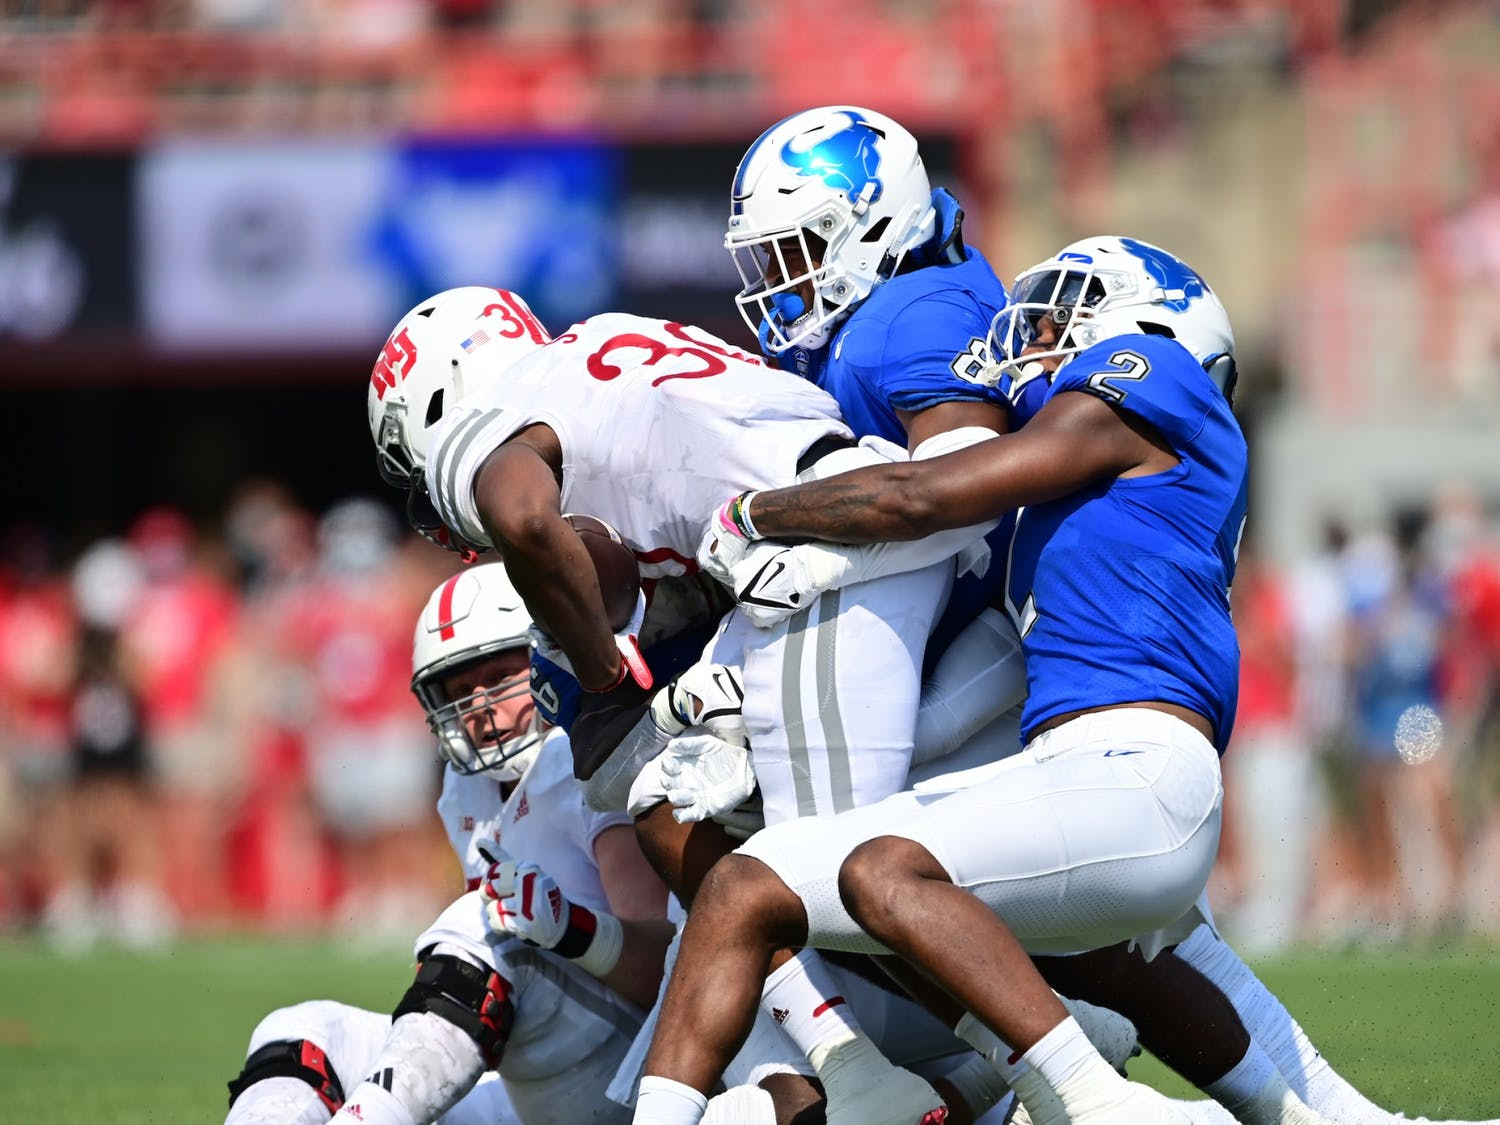 Linebackers Kadofi Wright (2) and James Patterson (8) combine for a tackle in UB's 28-3 loss to Nebraska Saturday.